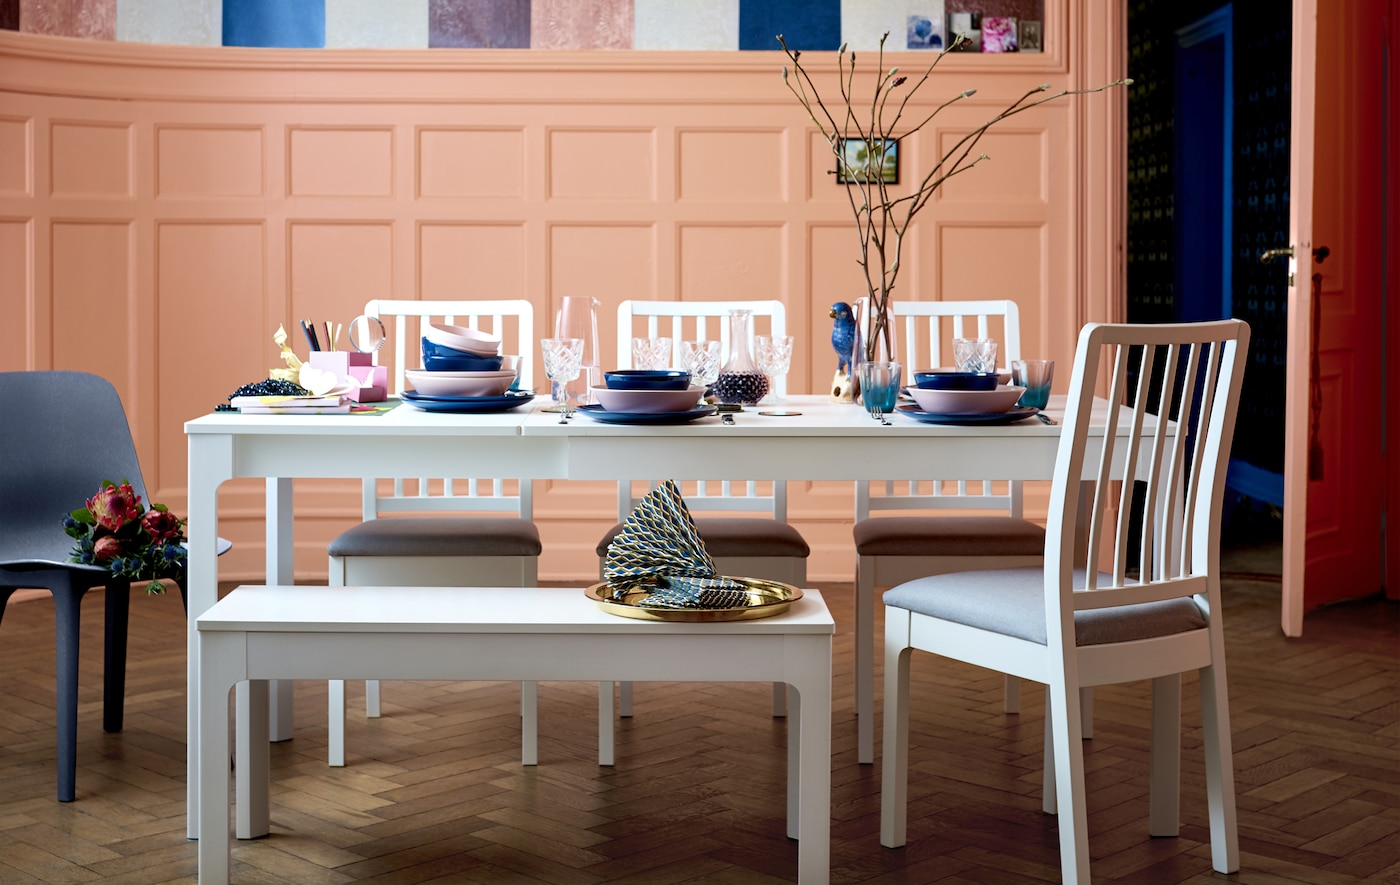 A long white dining table, chairs and bench set with colorful tableware.